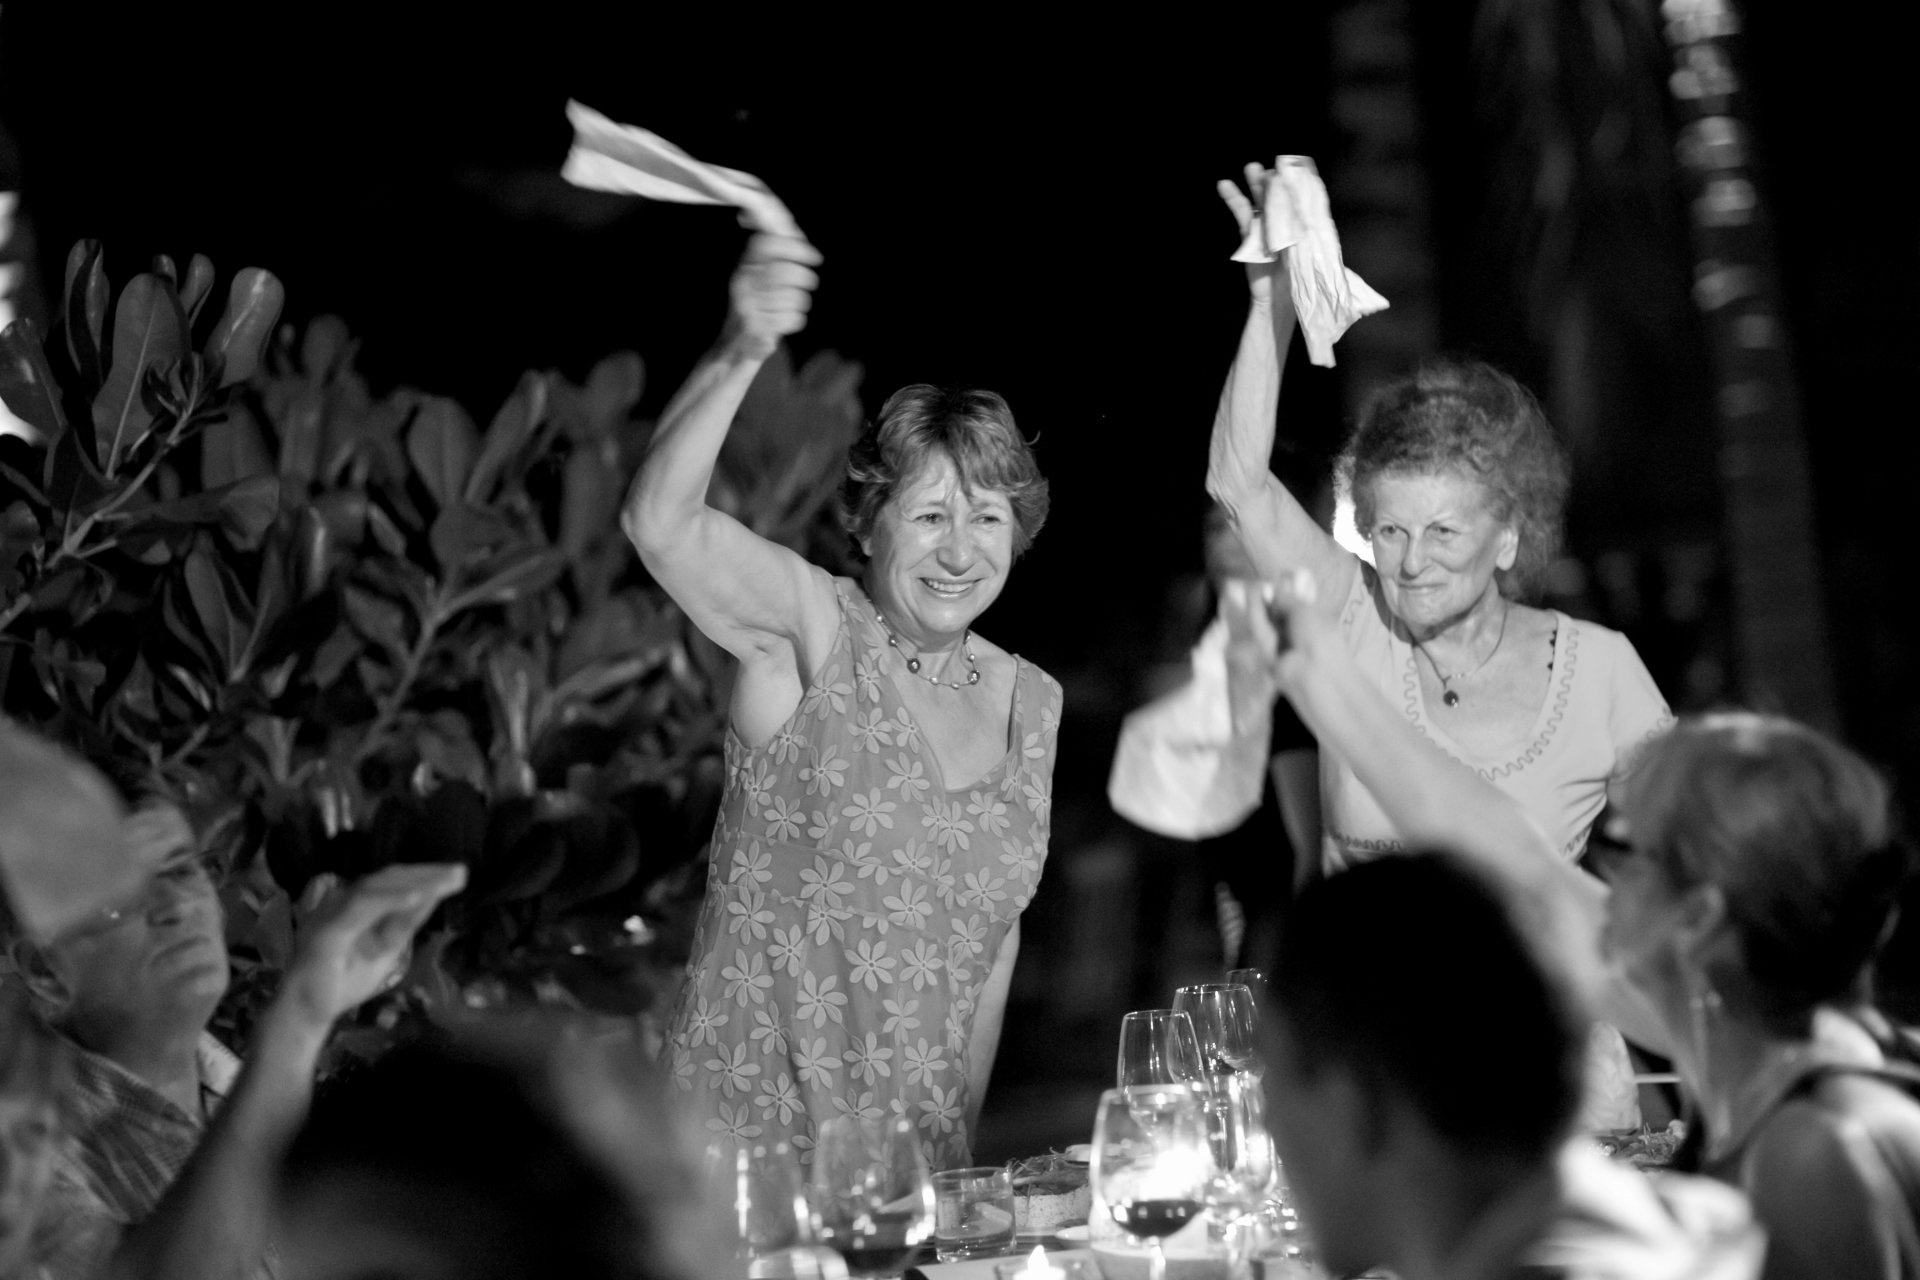 Batu Batu Island, Malaysia Wedding Photography | Guests raise glasses and twirl their napkins